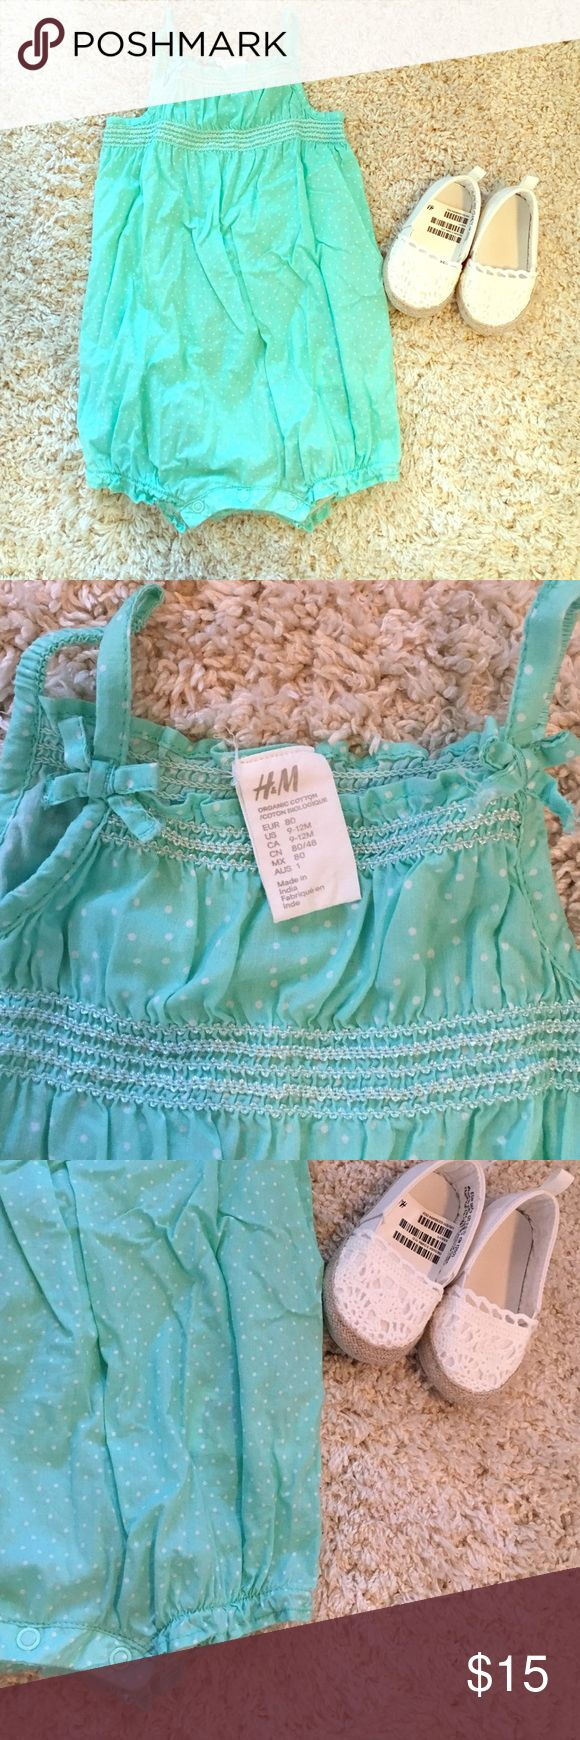 H&M Romper Turquoise with white polka dots. Worn only once! In perfect condition! NWT H&M shoes. *will sell shoes with other outfits* (see closet). $20 with shoes. H&M One Pieces